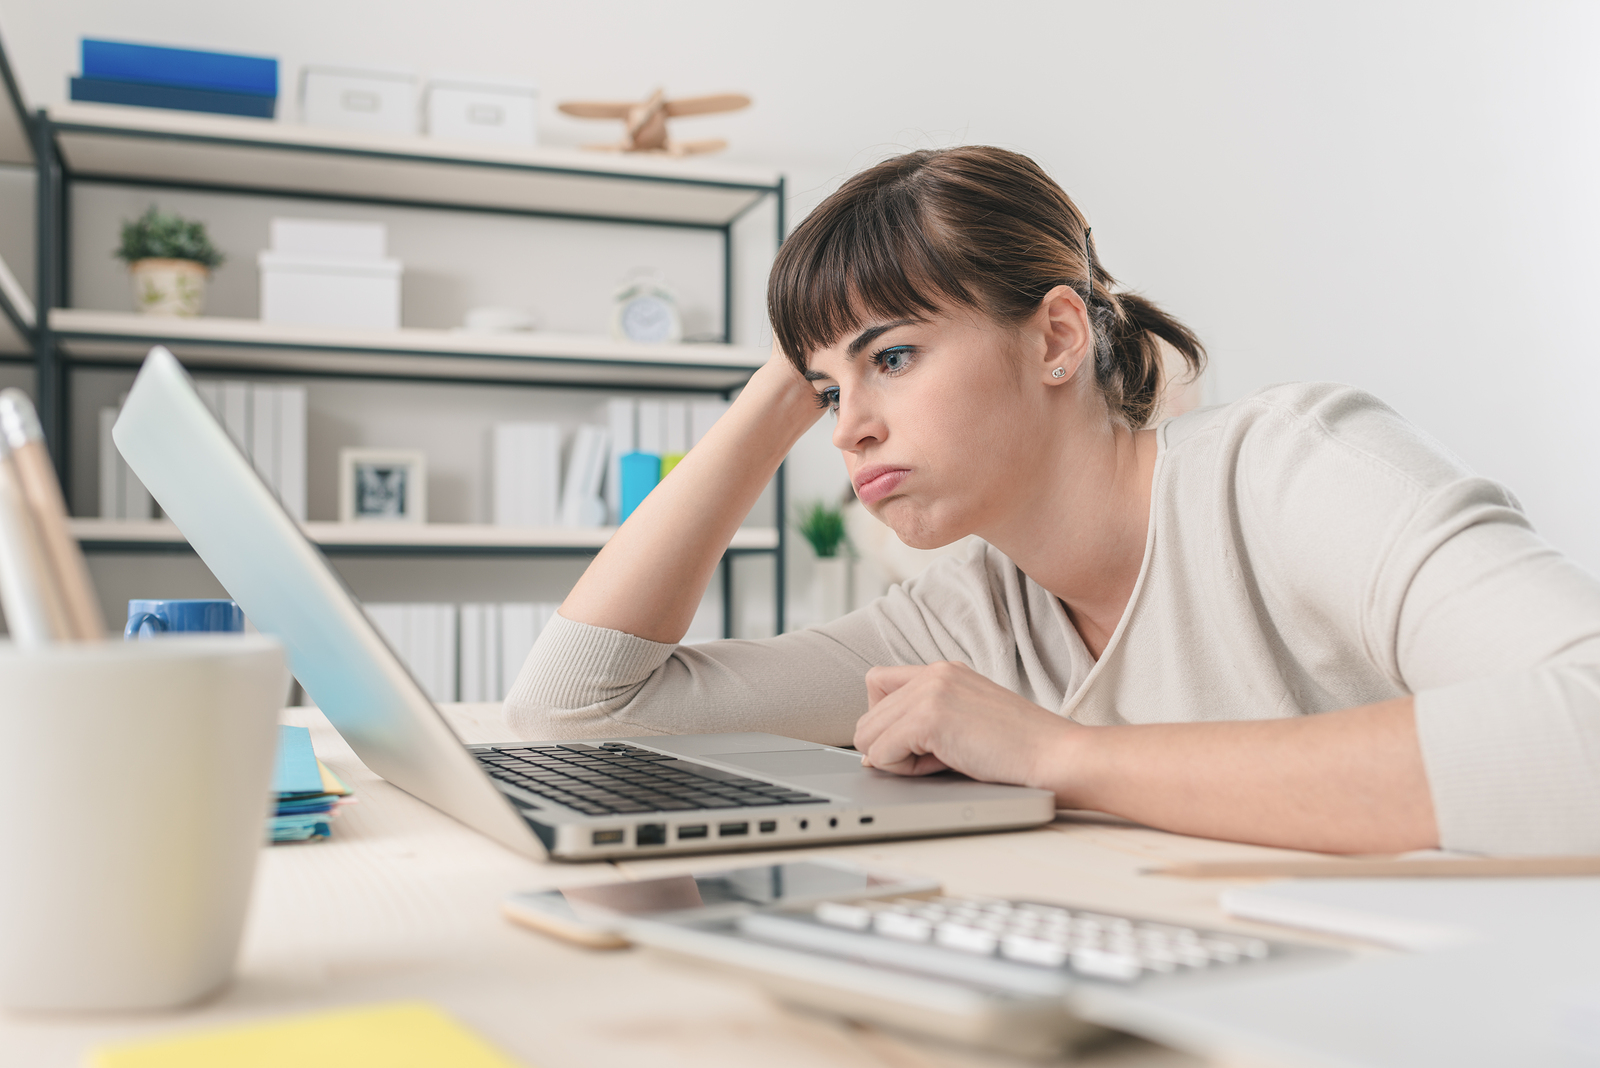 Flustered young woman learns about health insurance changes in 2017